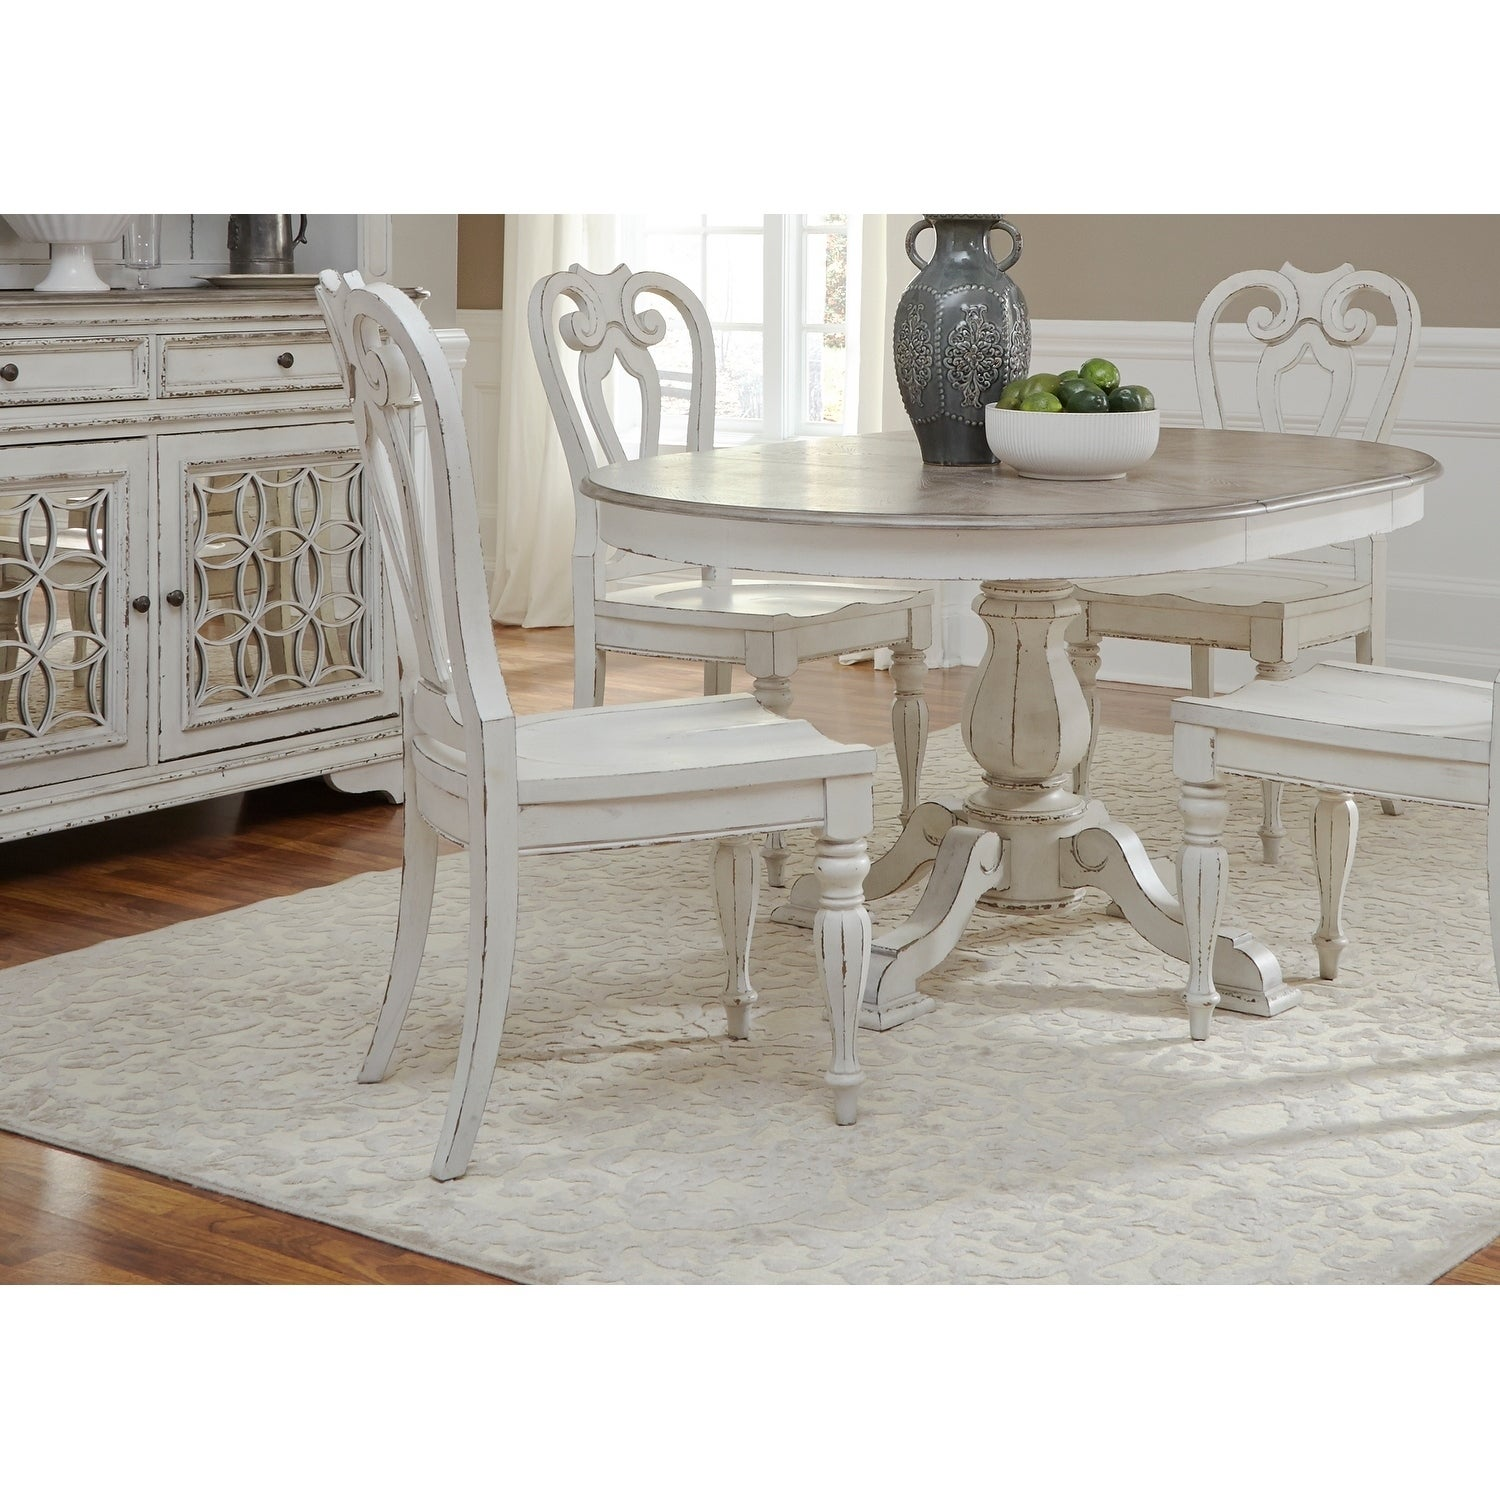 Shop Magnolia Manor Antique White Splat Back Side Chair   On Sale   Free  Shipping Today   Overstock.com   18619078